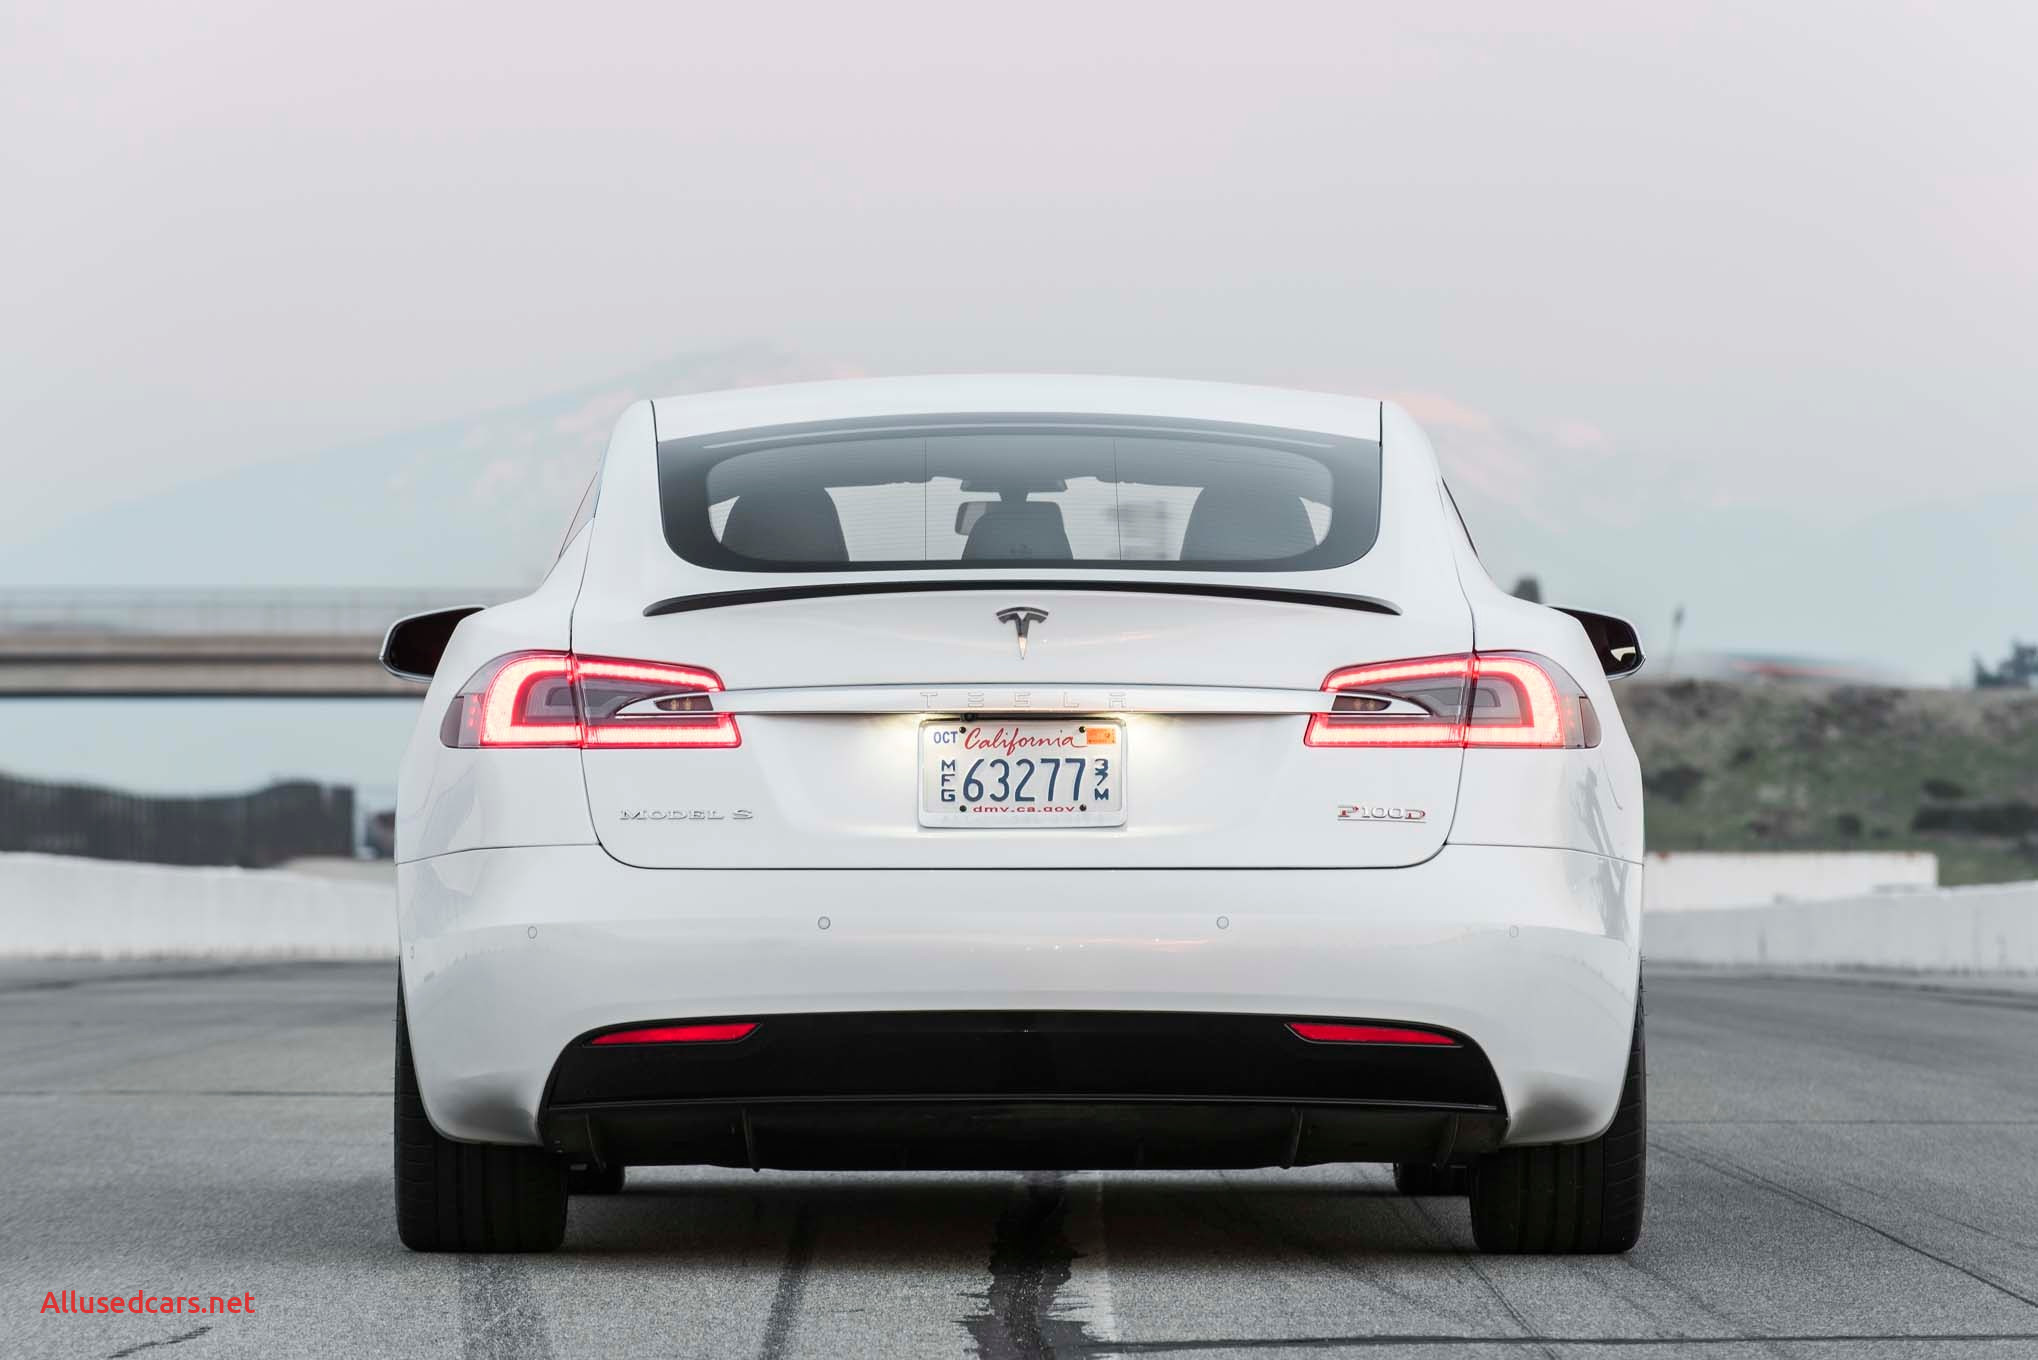 Used Tesla Model S Unique A Closer Look at the 2017 Tesla Model S P100d S Ludicrous